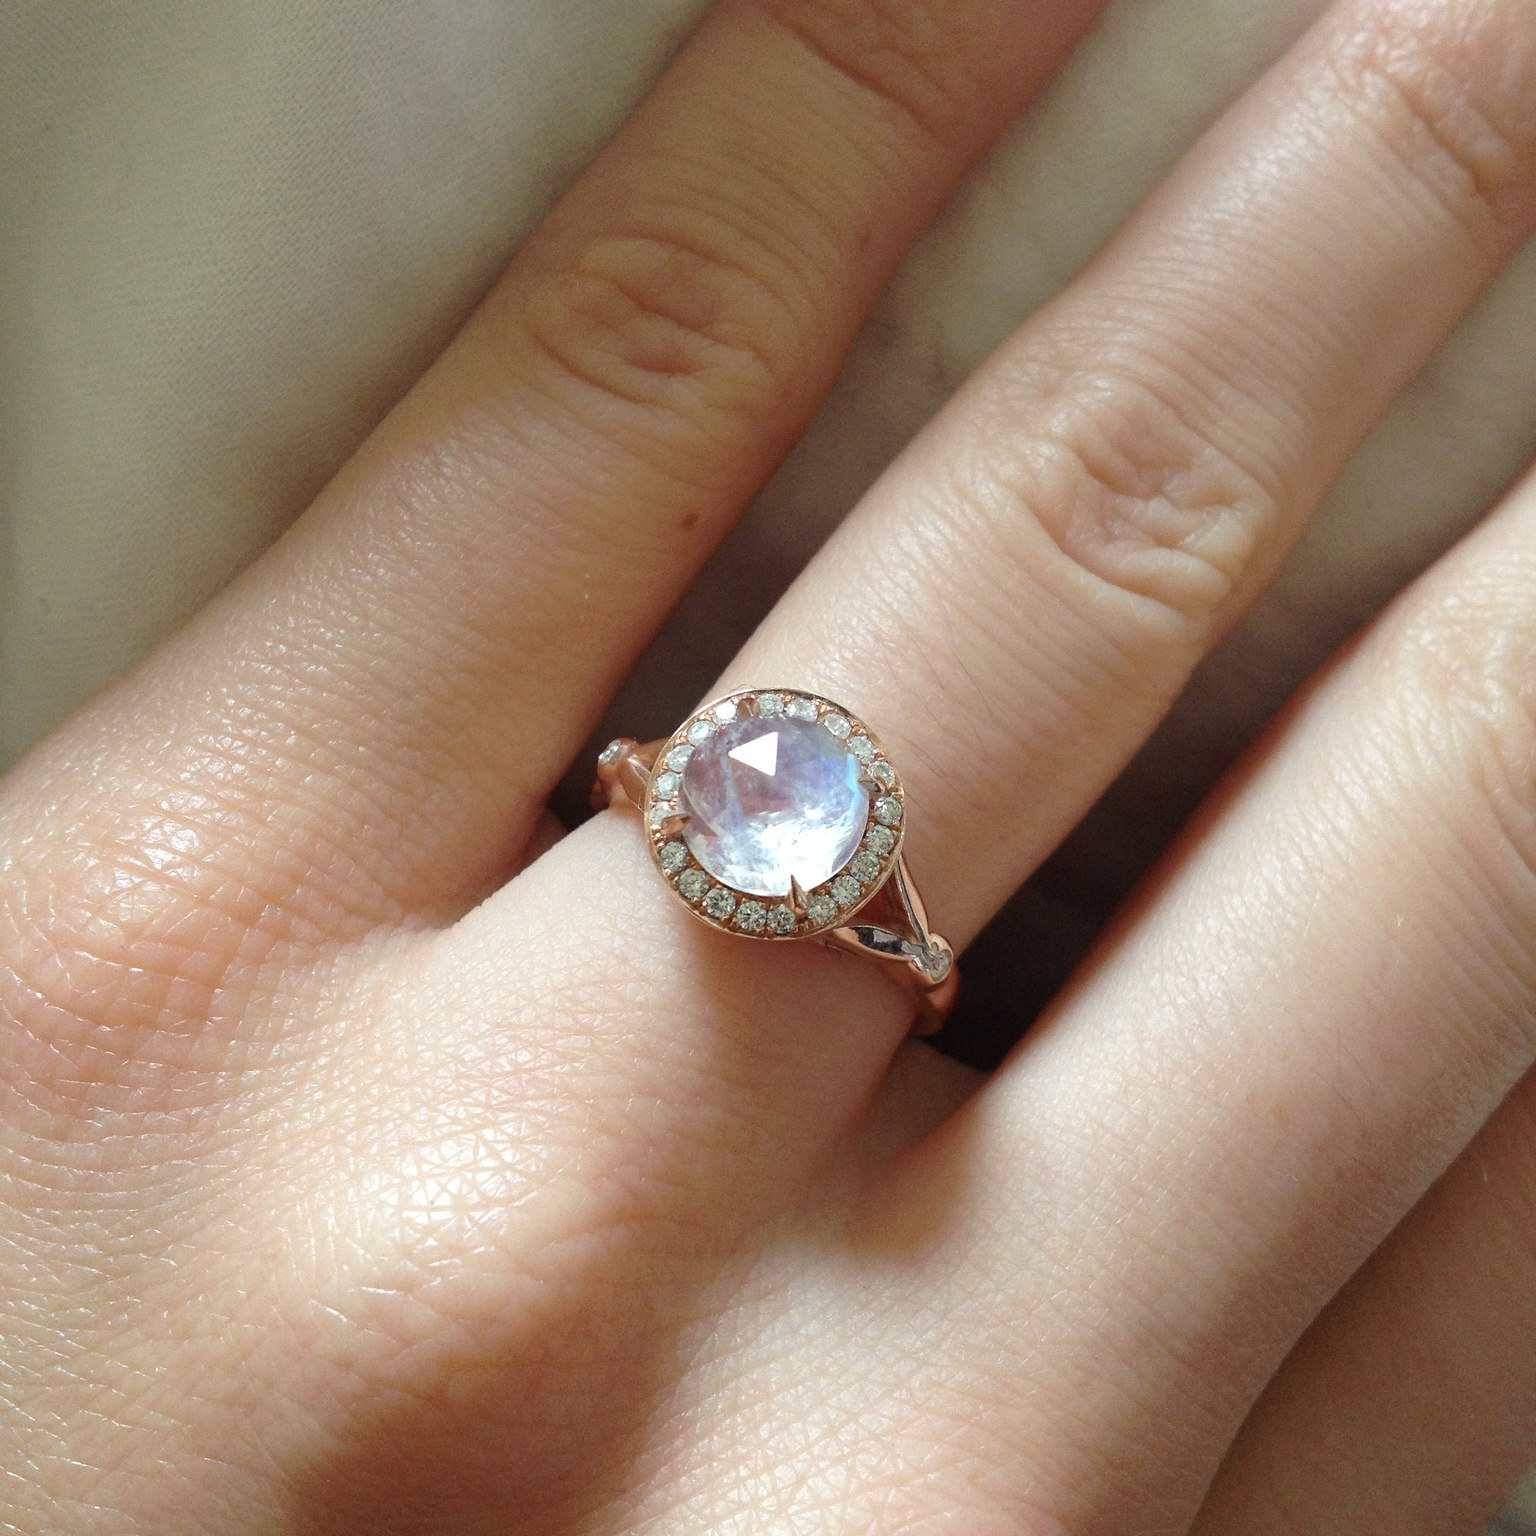 Moonstone Meaning And Facts Can Make An Engagement Ring Alternative